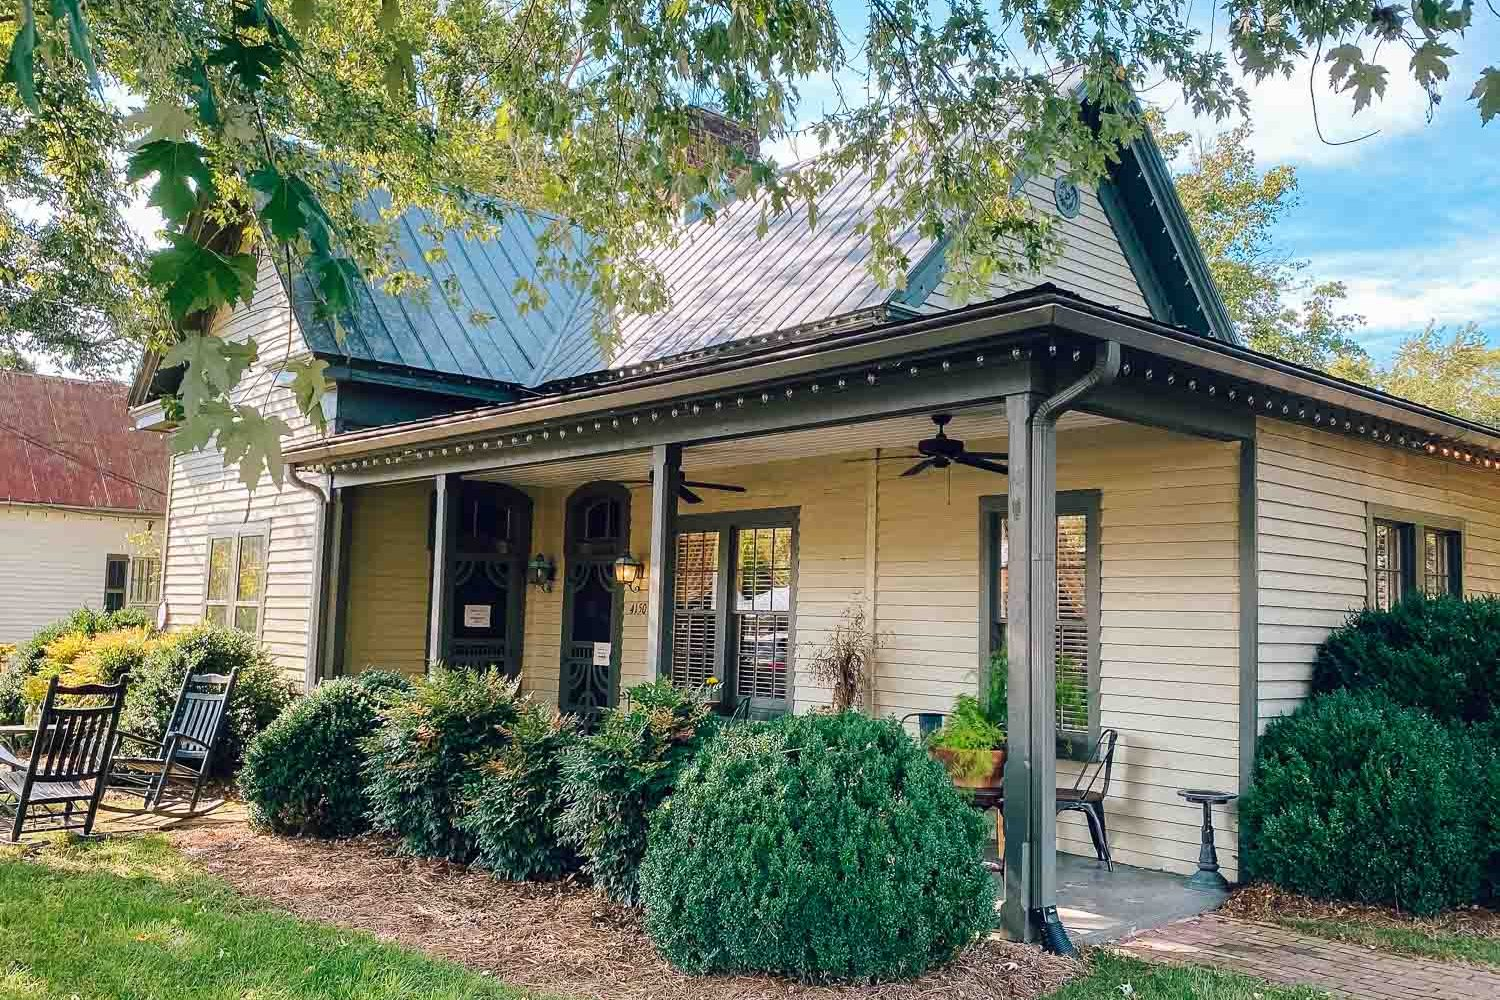 Historic home turned restaurant called 1892 in Leiper's Fork, Tennessee. There is one porch light on and a couple rocking chairs in the yard - things to do in Leiper's Fork